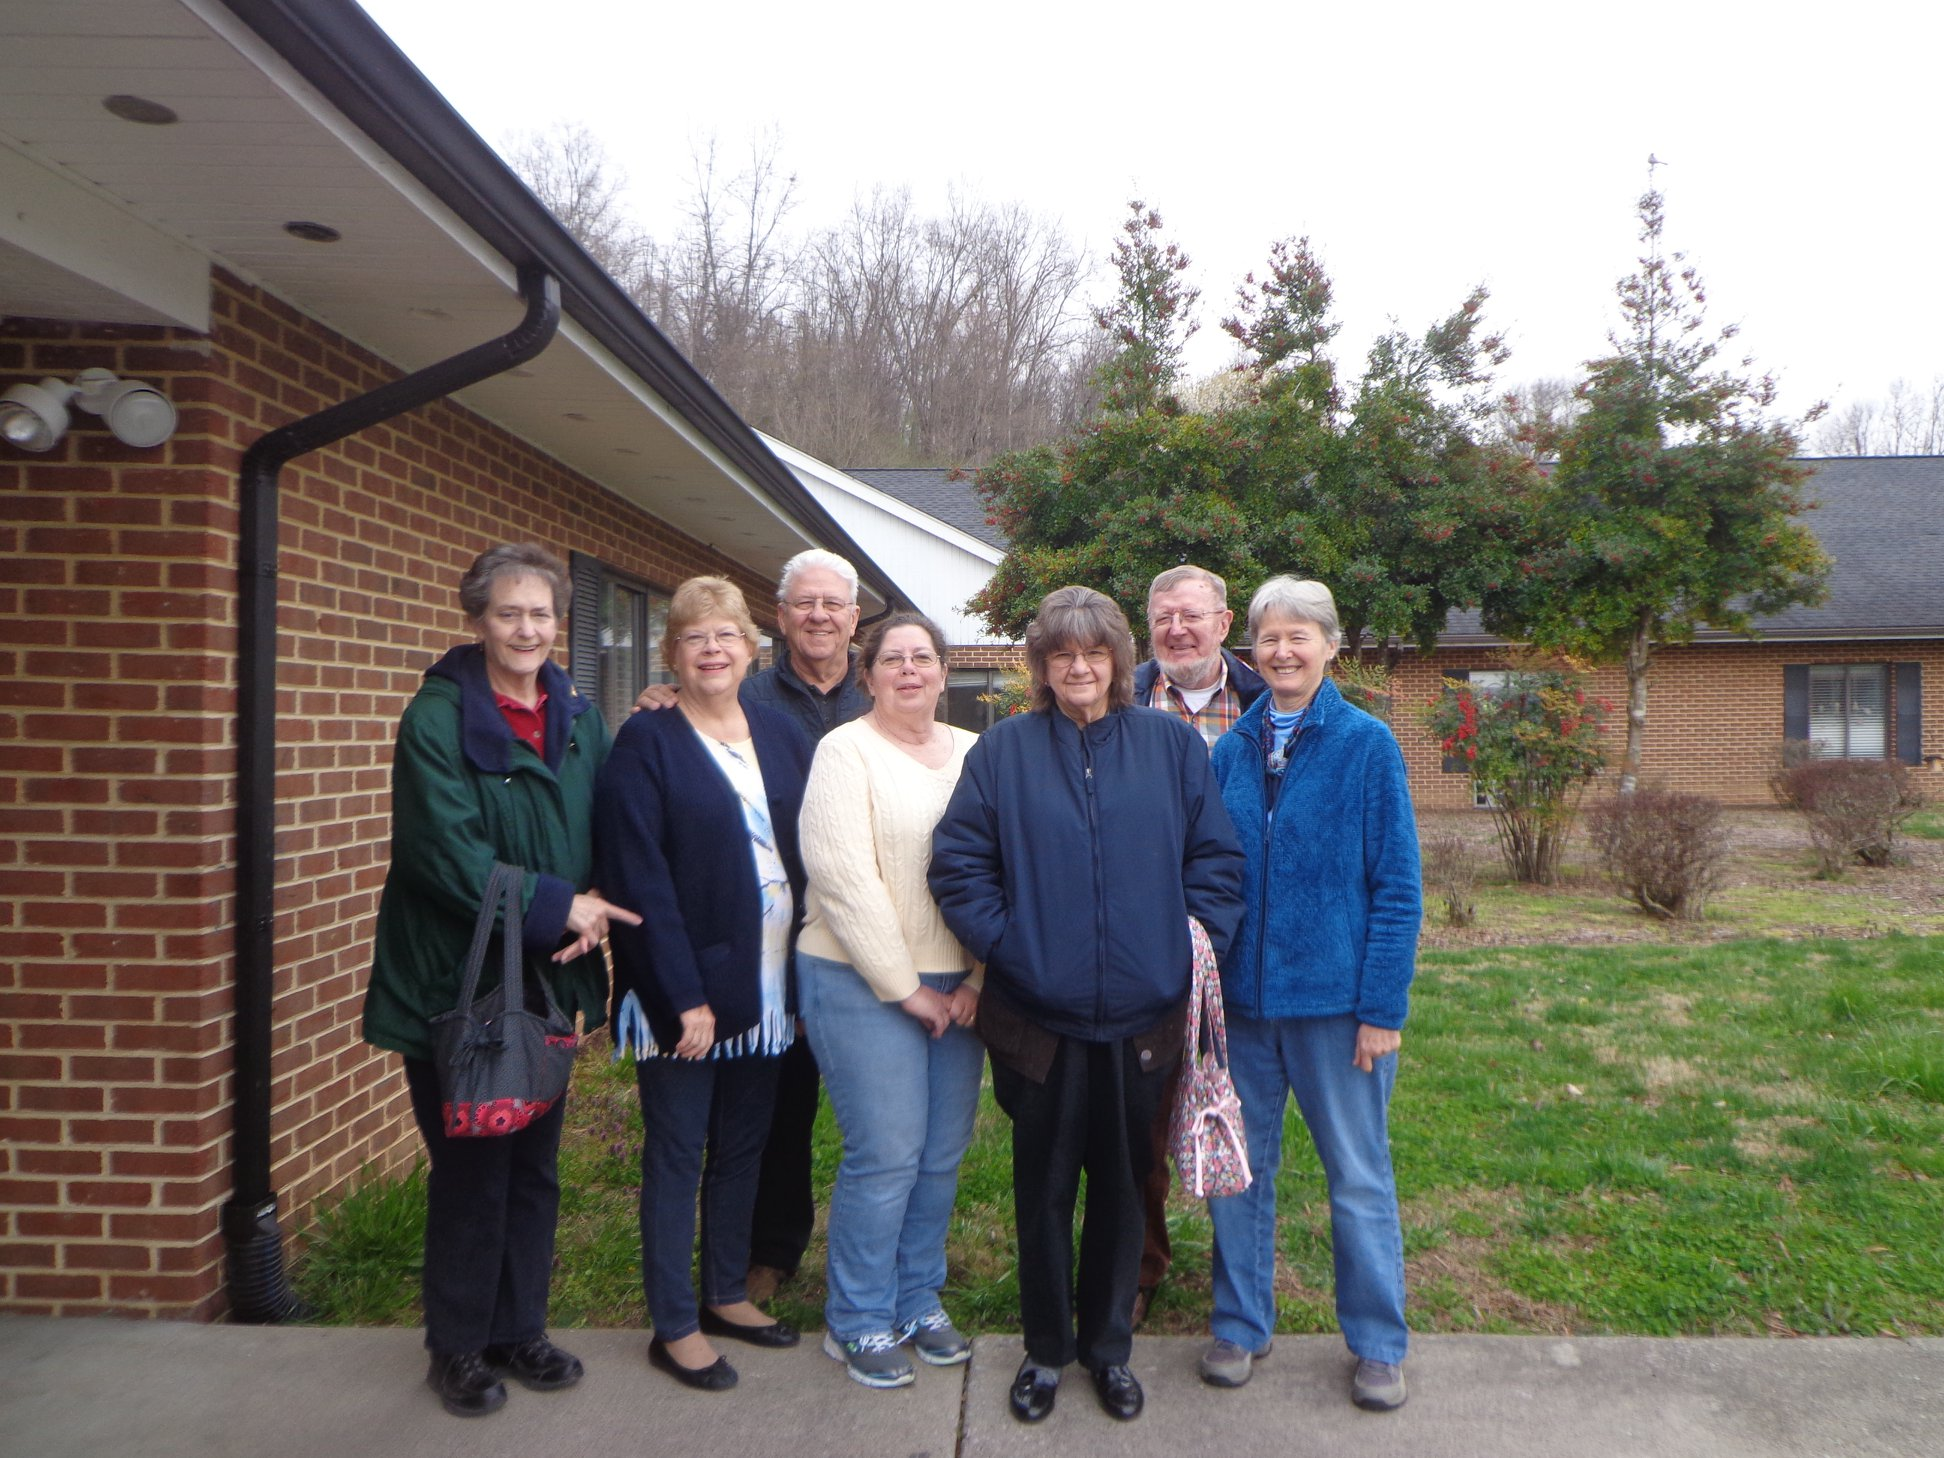 Bonsack Volunteers Larry & Phyllis Perdue and Larry & Lynda Brumfield, along with other volunteers from the Roanoke Valley.